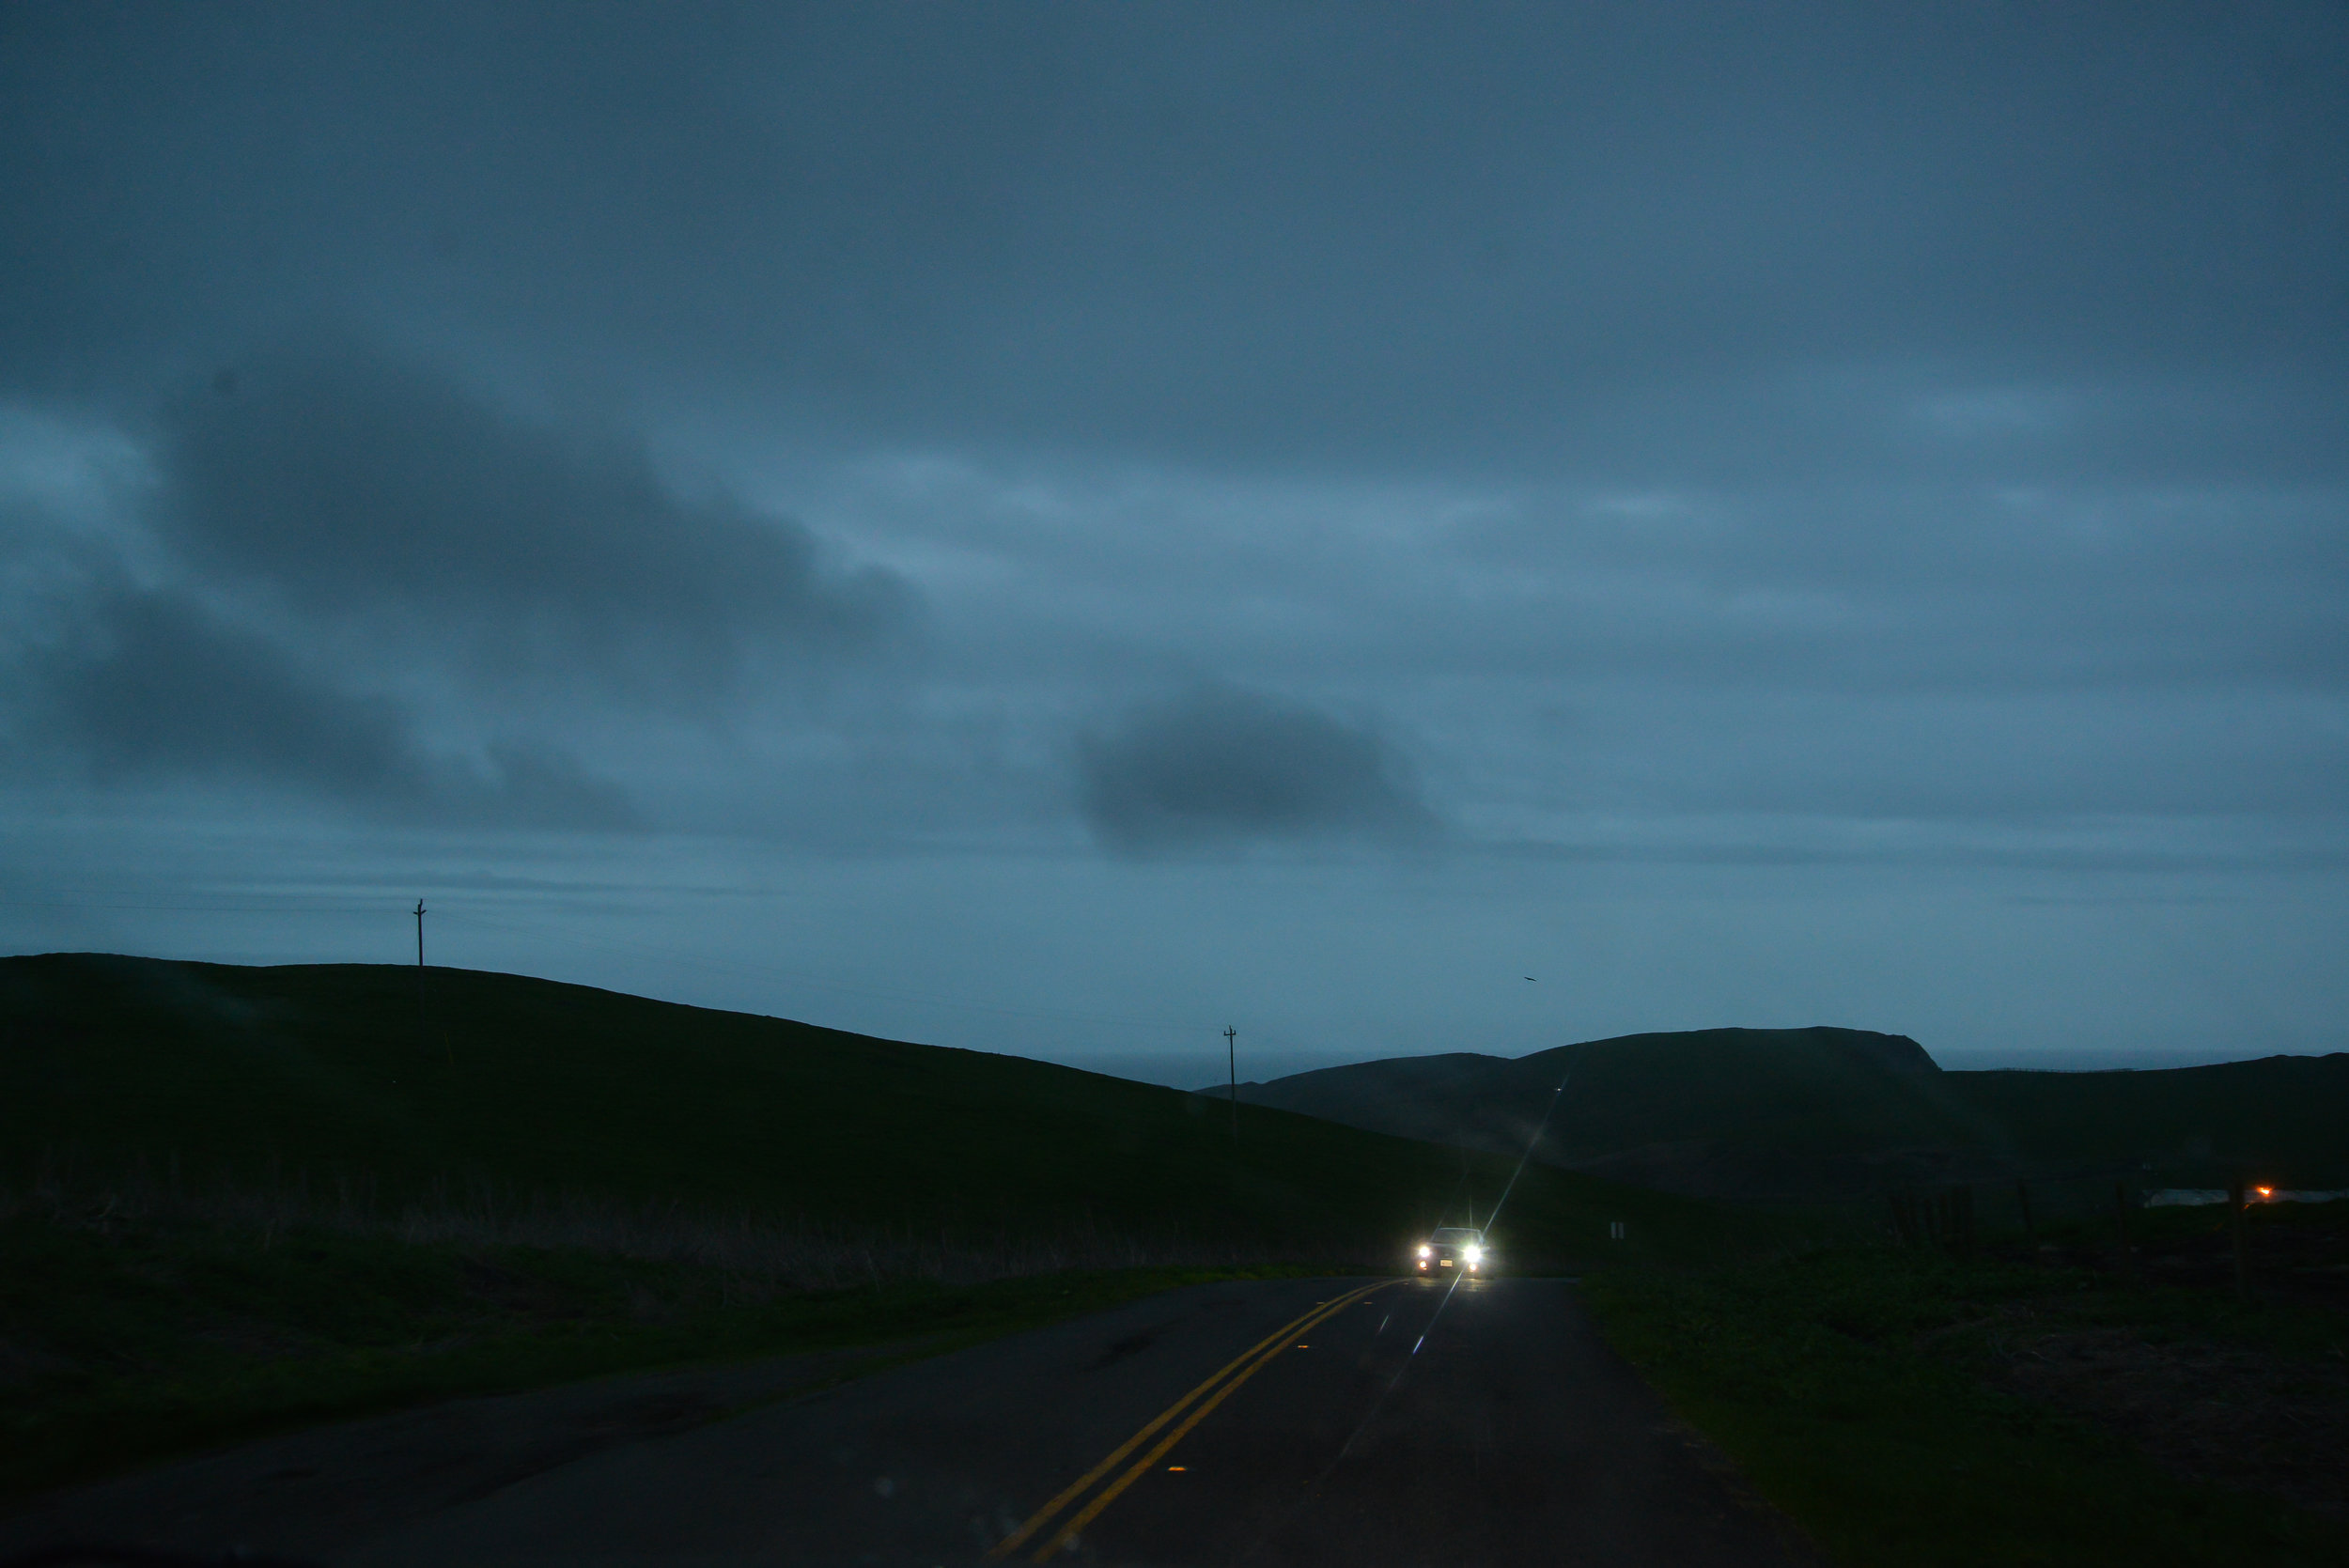 Point-Reyes-headlights-14-6365.jpg